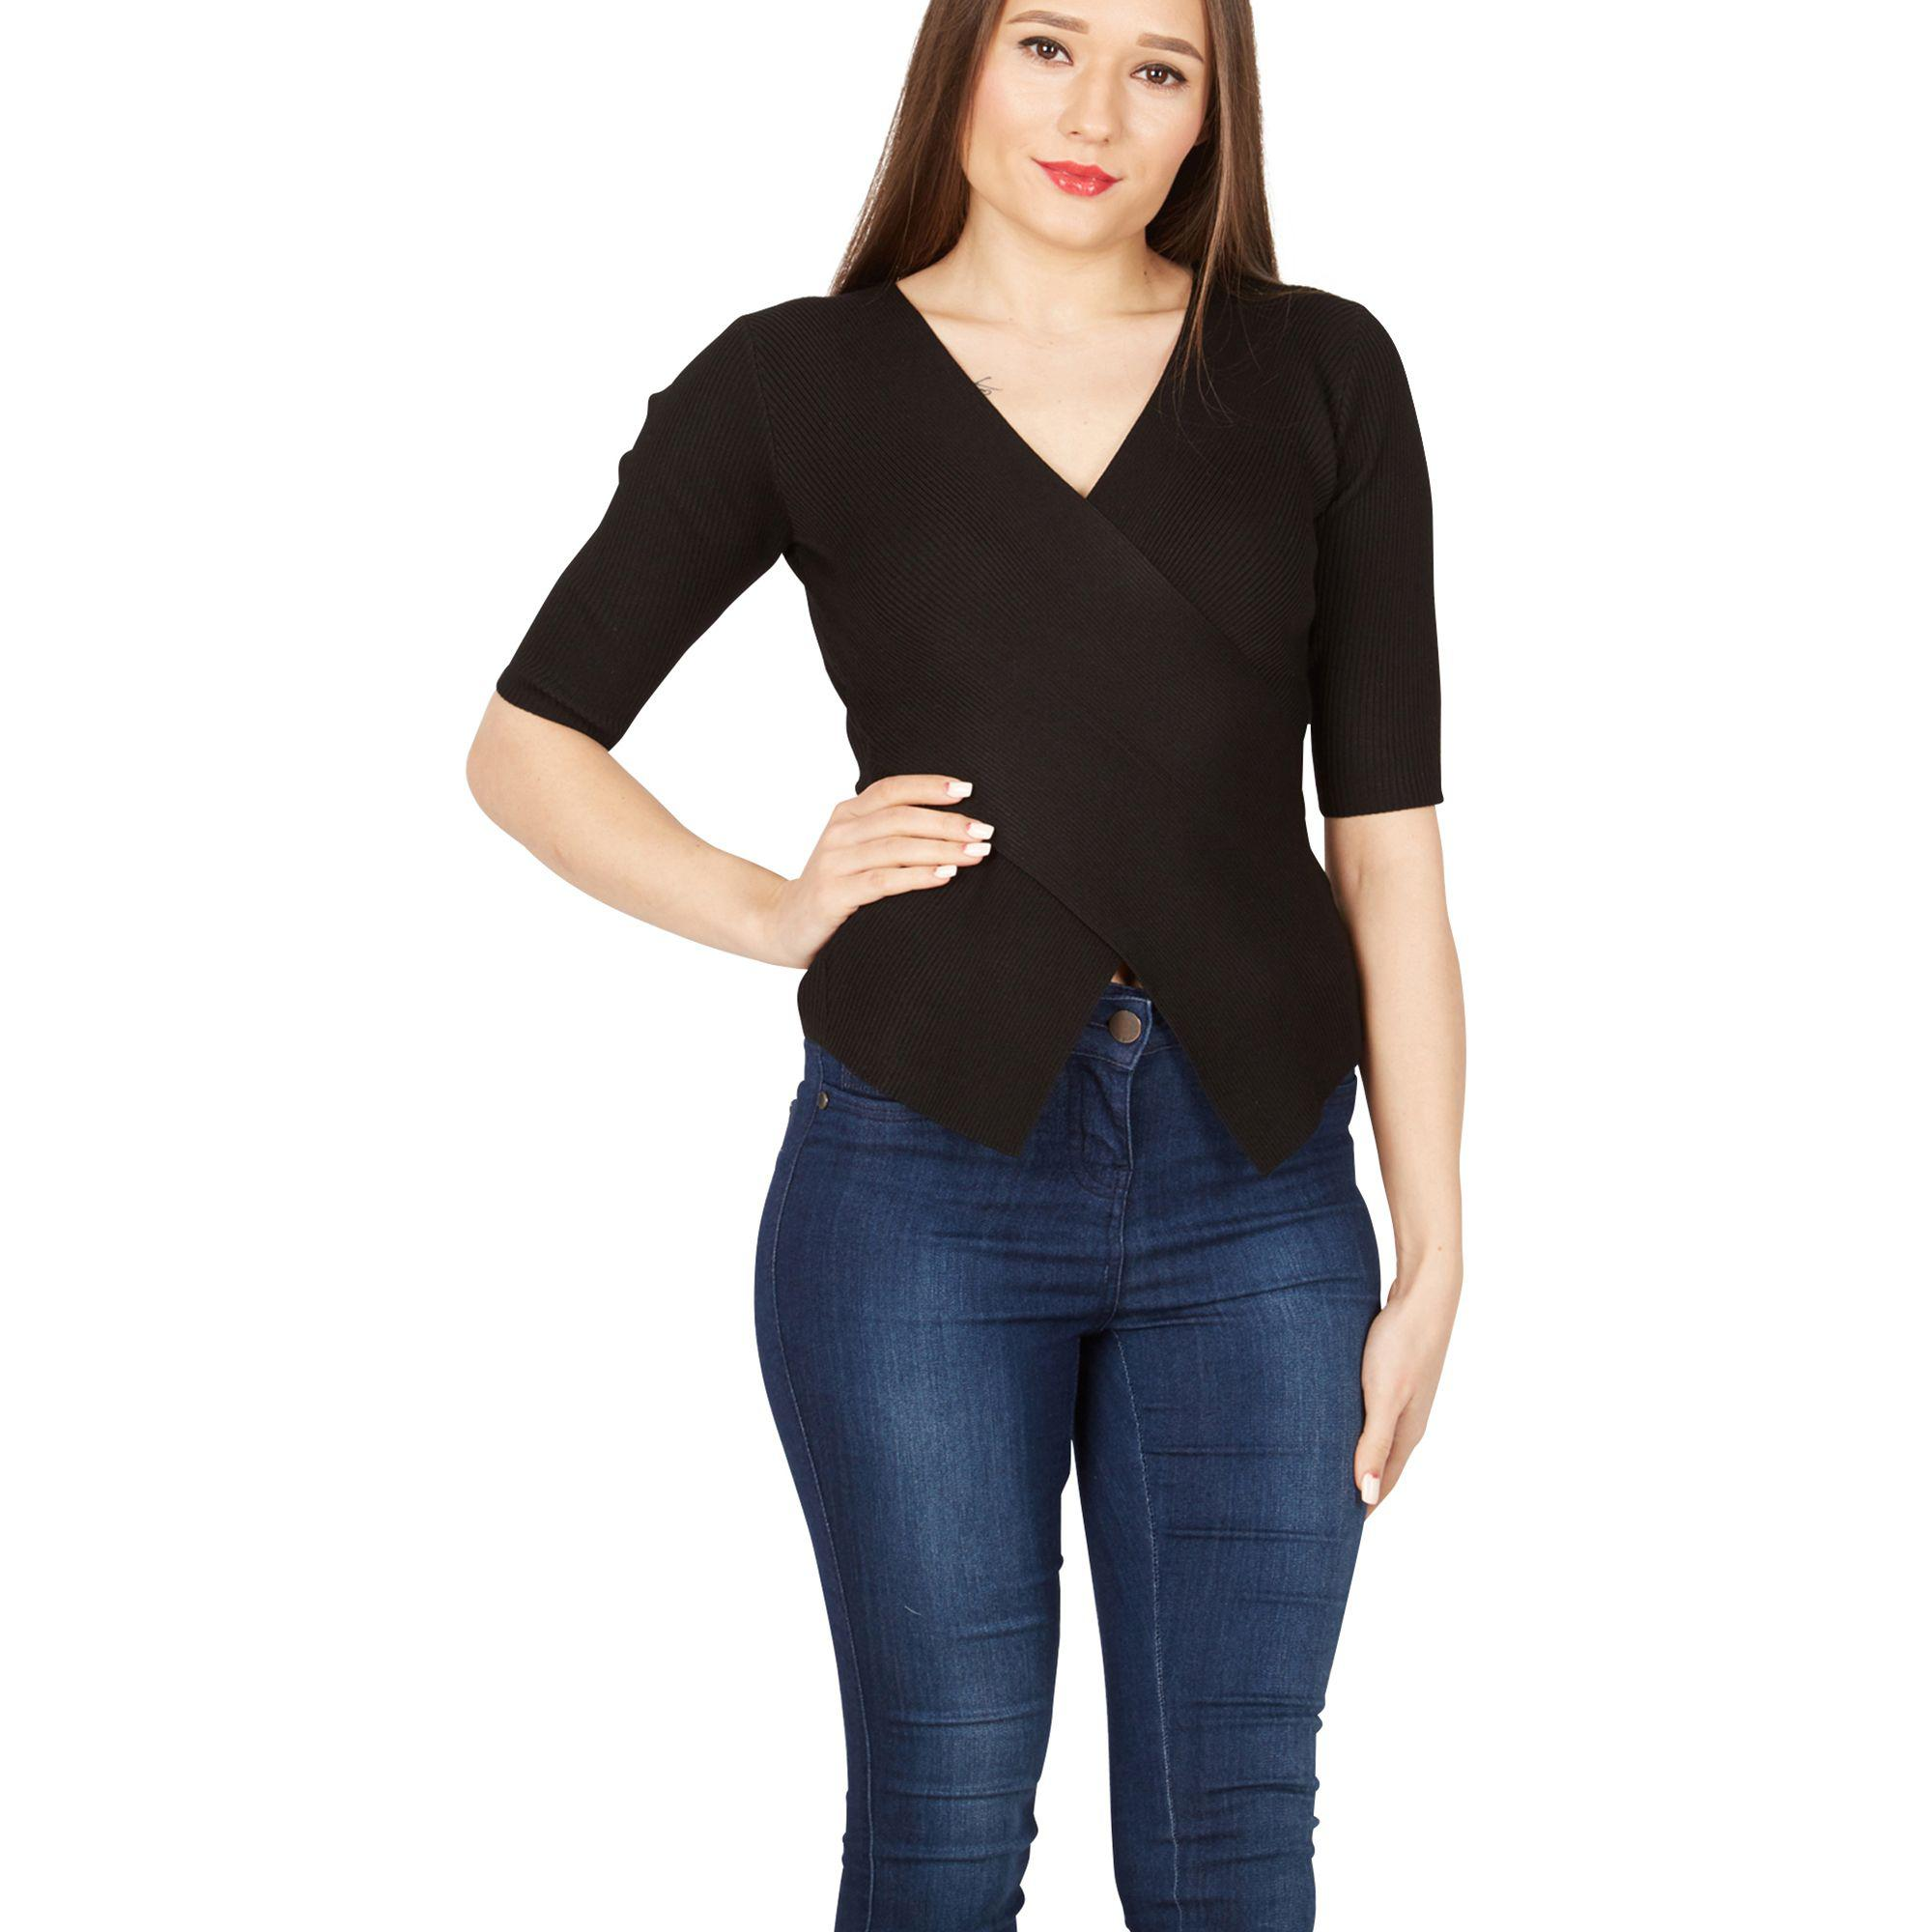 cc113de8 Apricot Black Ribbed Crossover Top in Black - Lyst